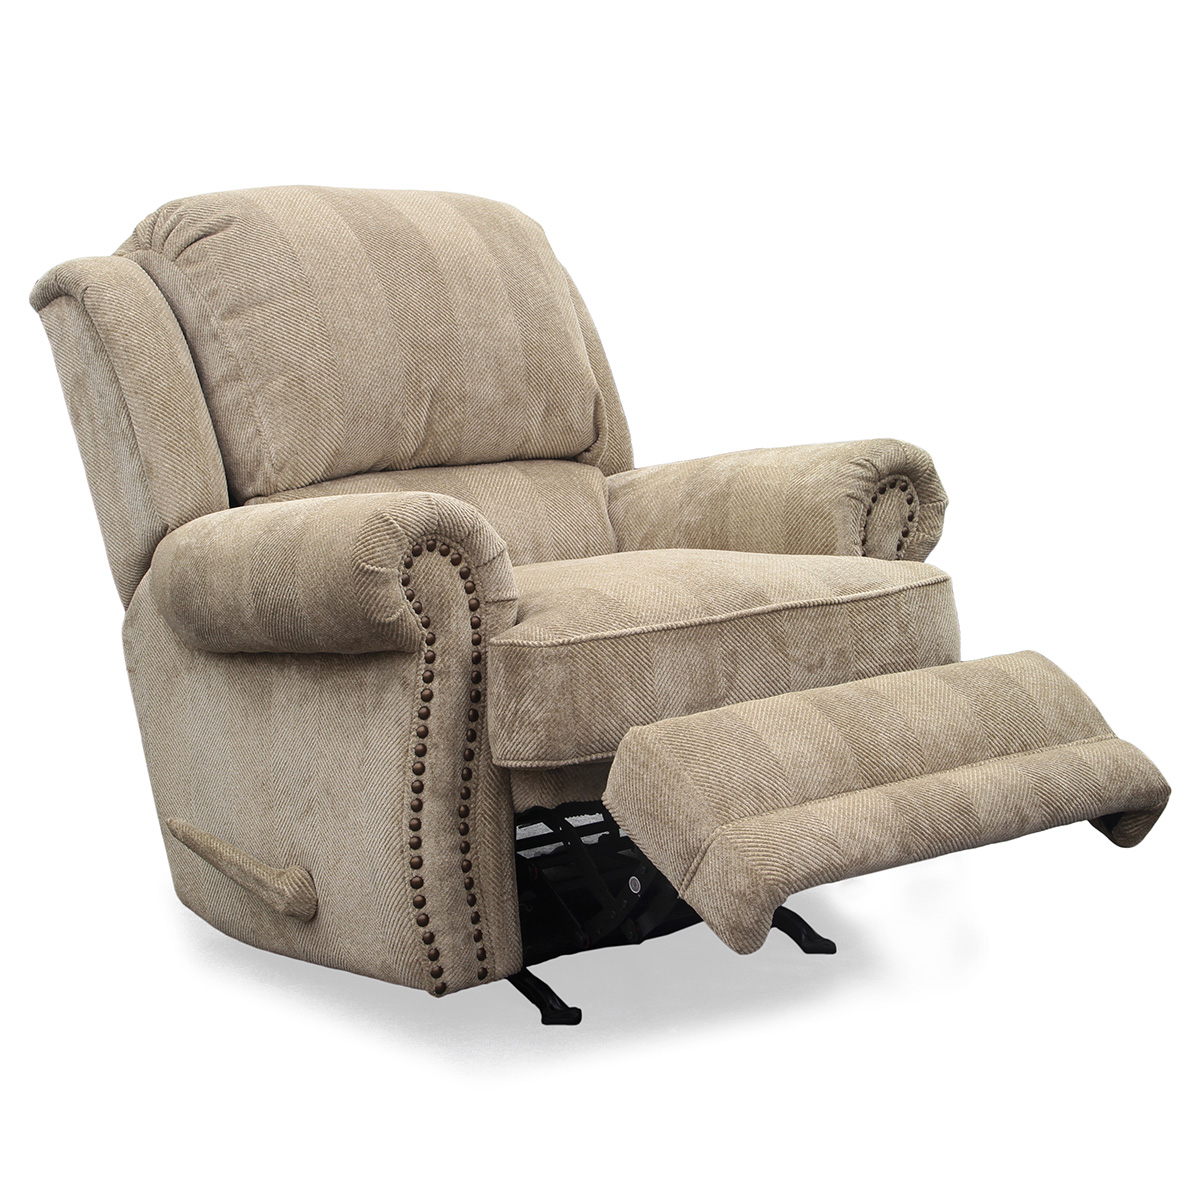 BarcaLounger Regency Recliner in Odyssey Cashmere Chenille Fabric  sc 1 st  Dynamic Home Decor : fabric recliners chairs - islam-shia.org